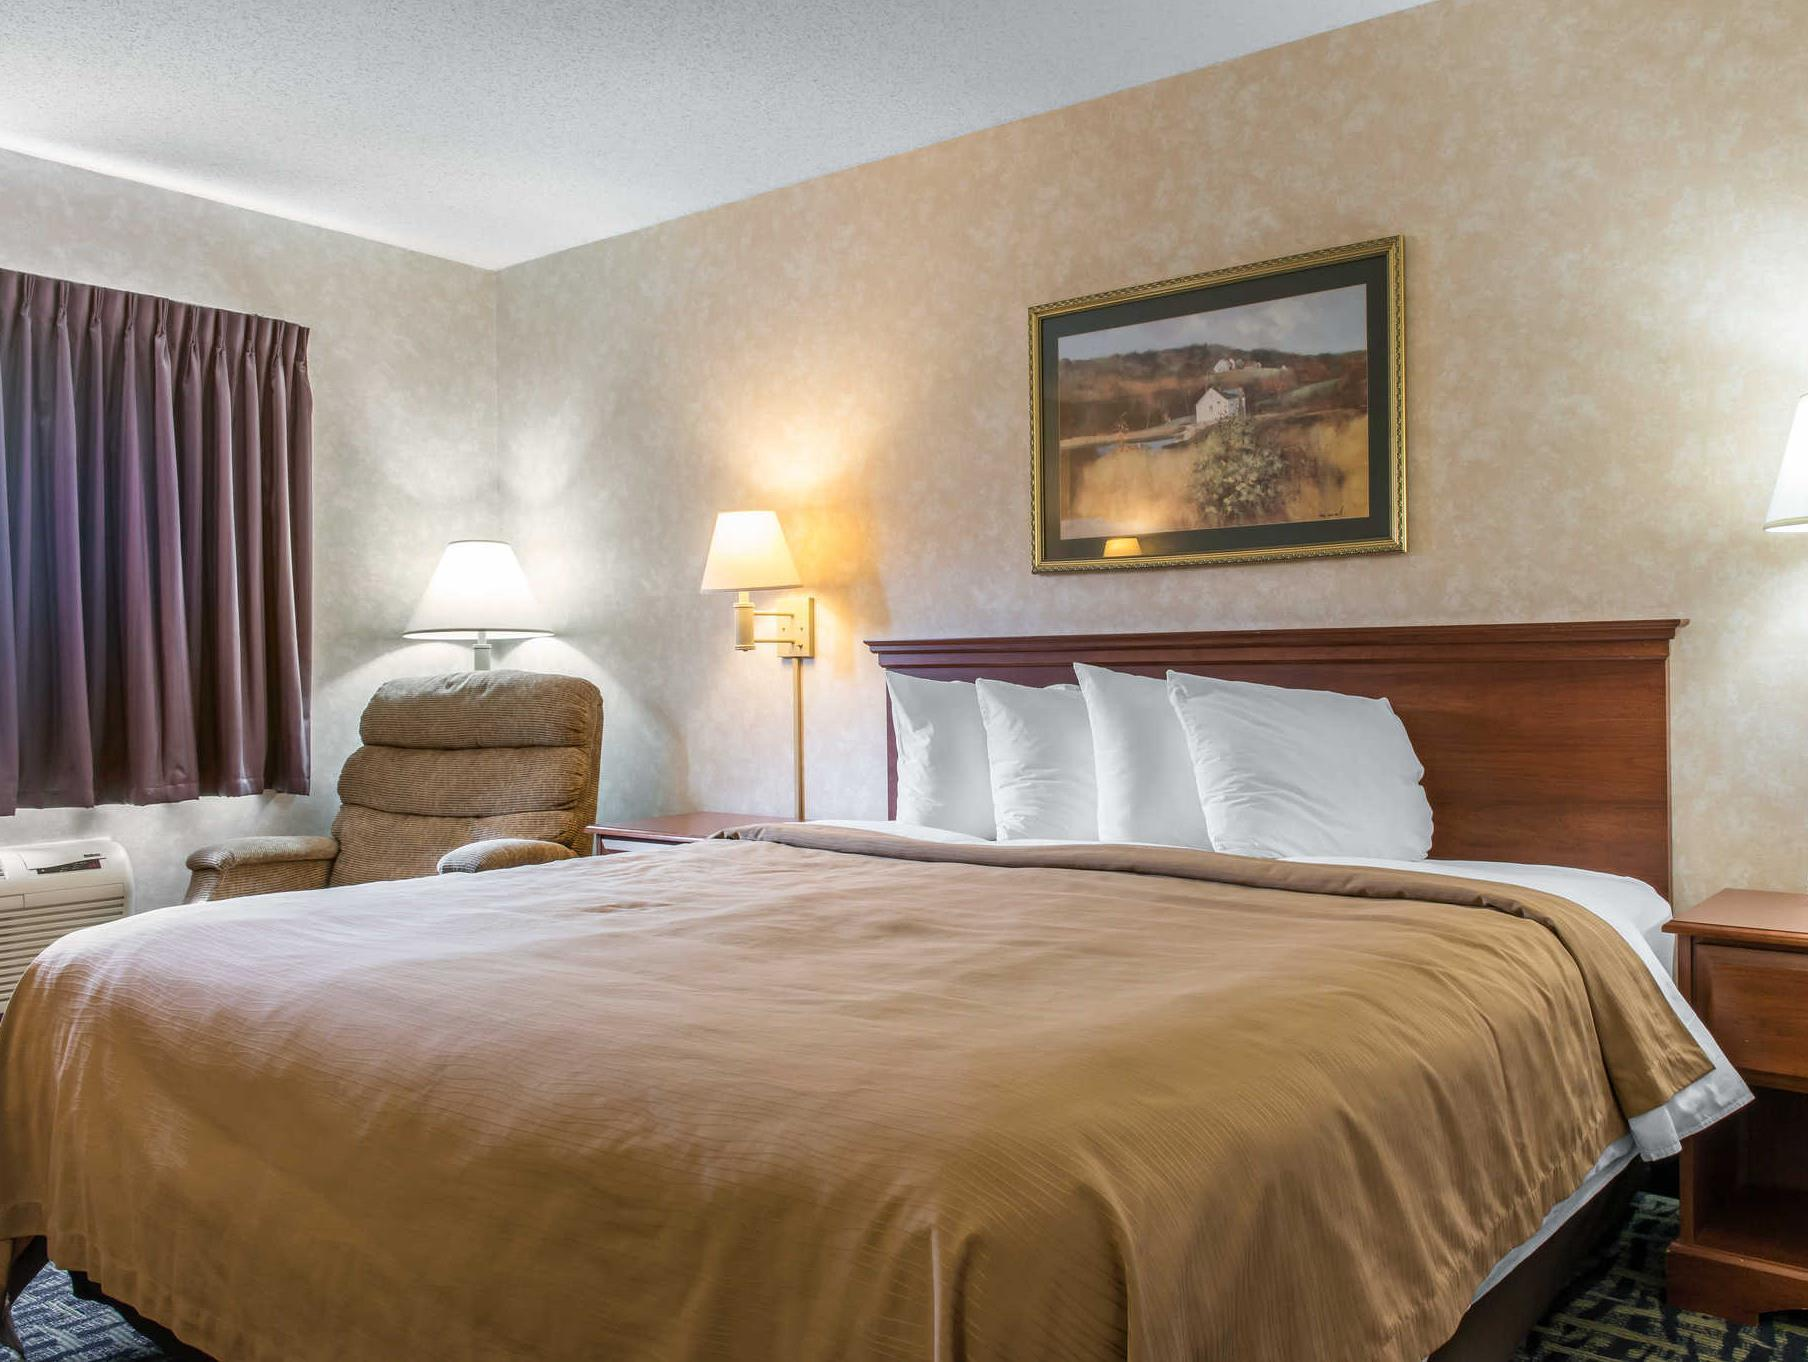 Quality Inn and Suites Titusville, Crawford